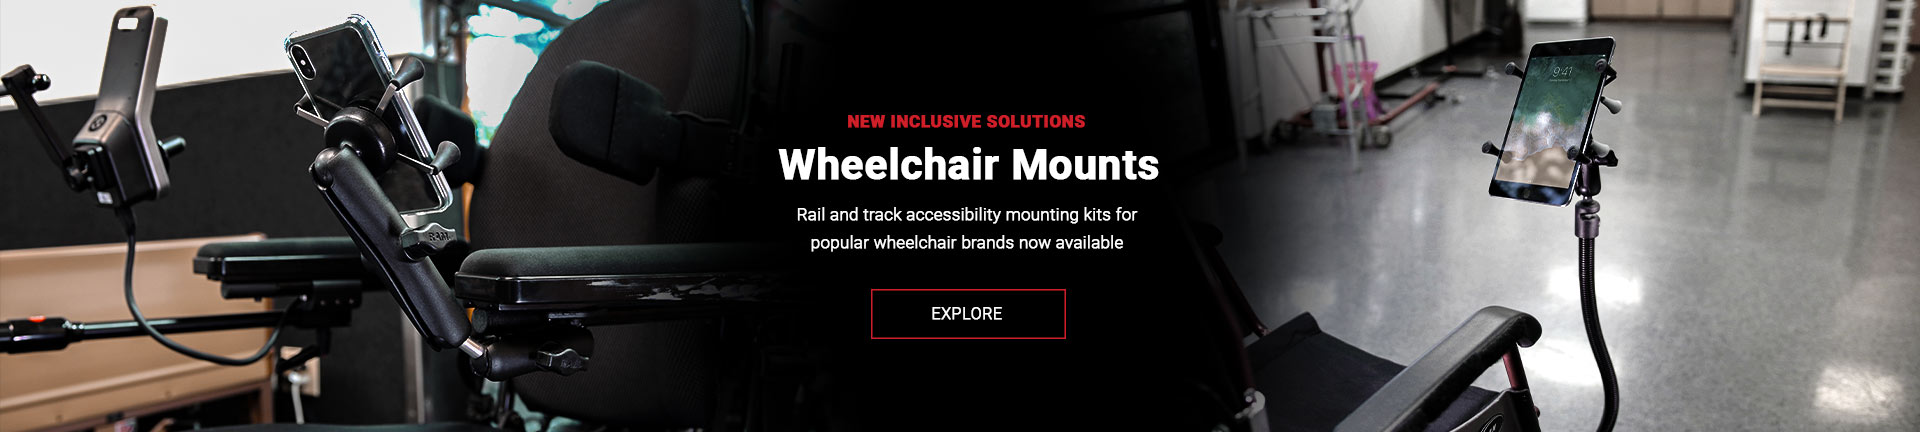 Wheelchair Mounts